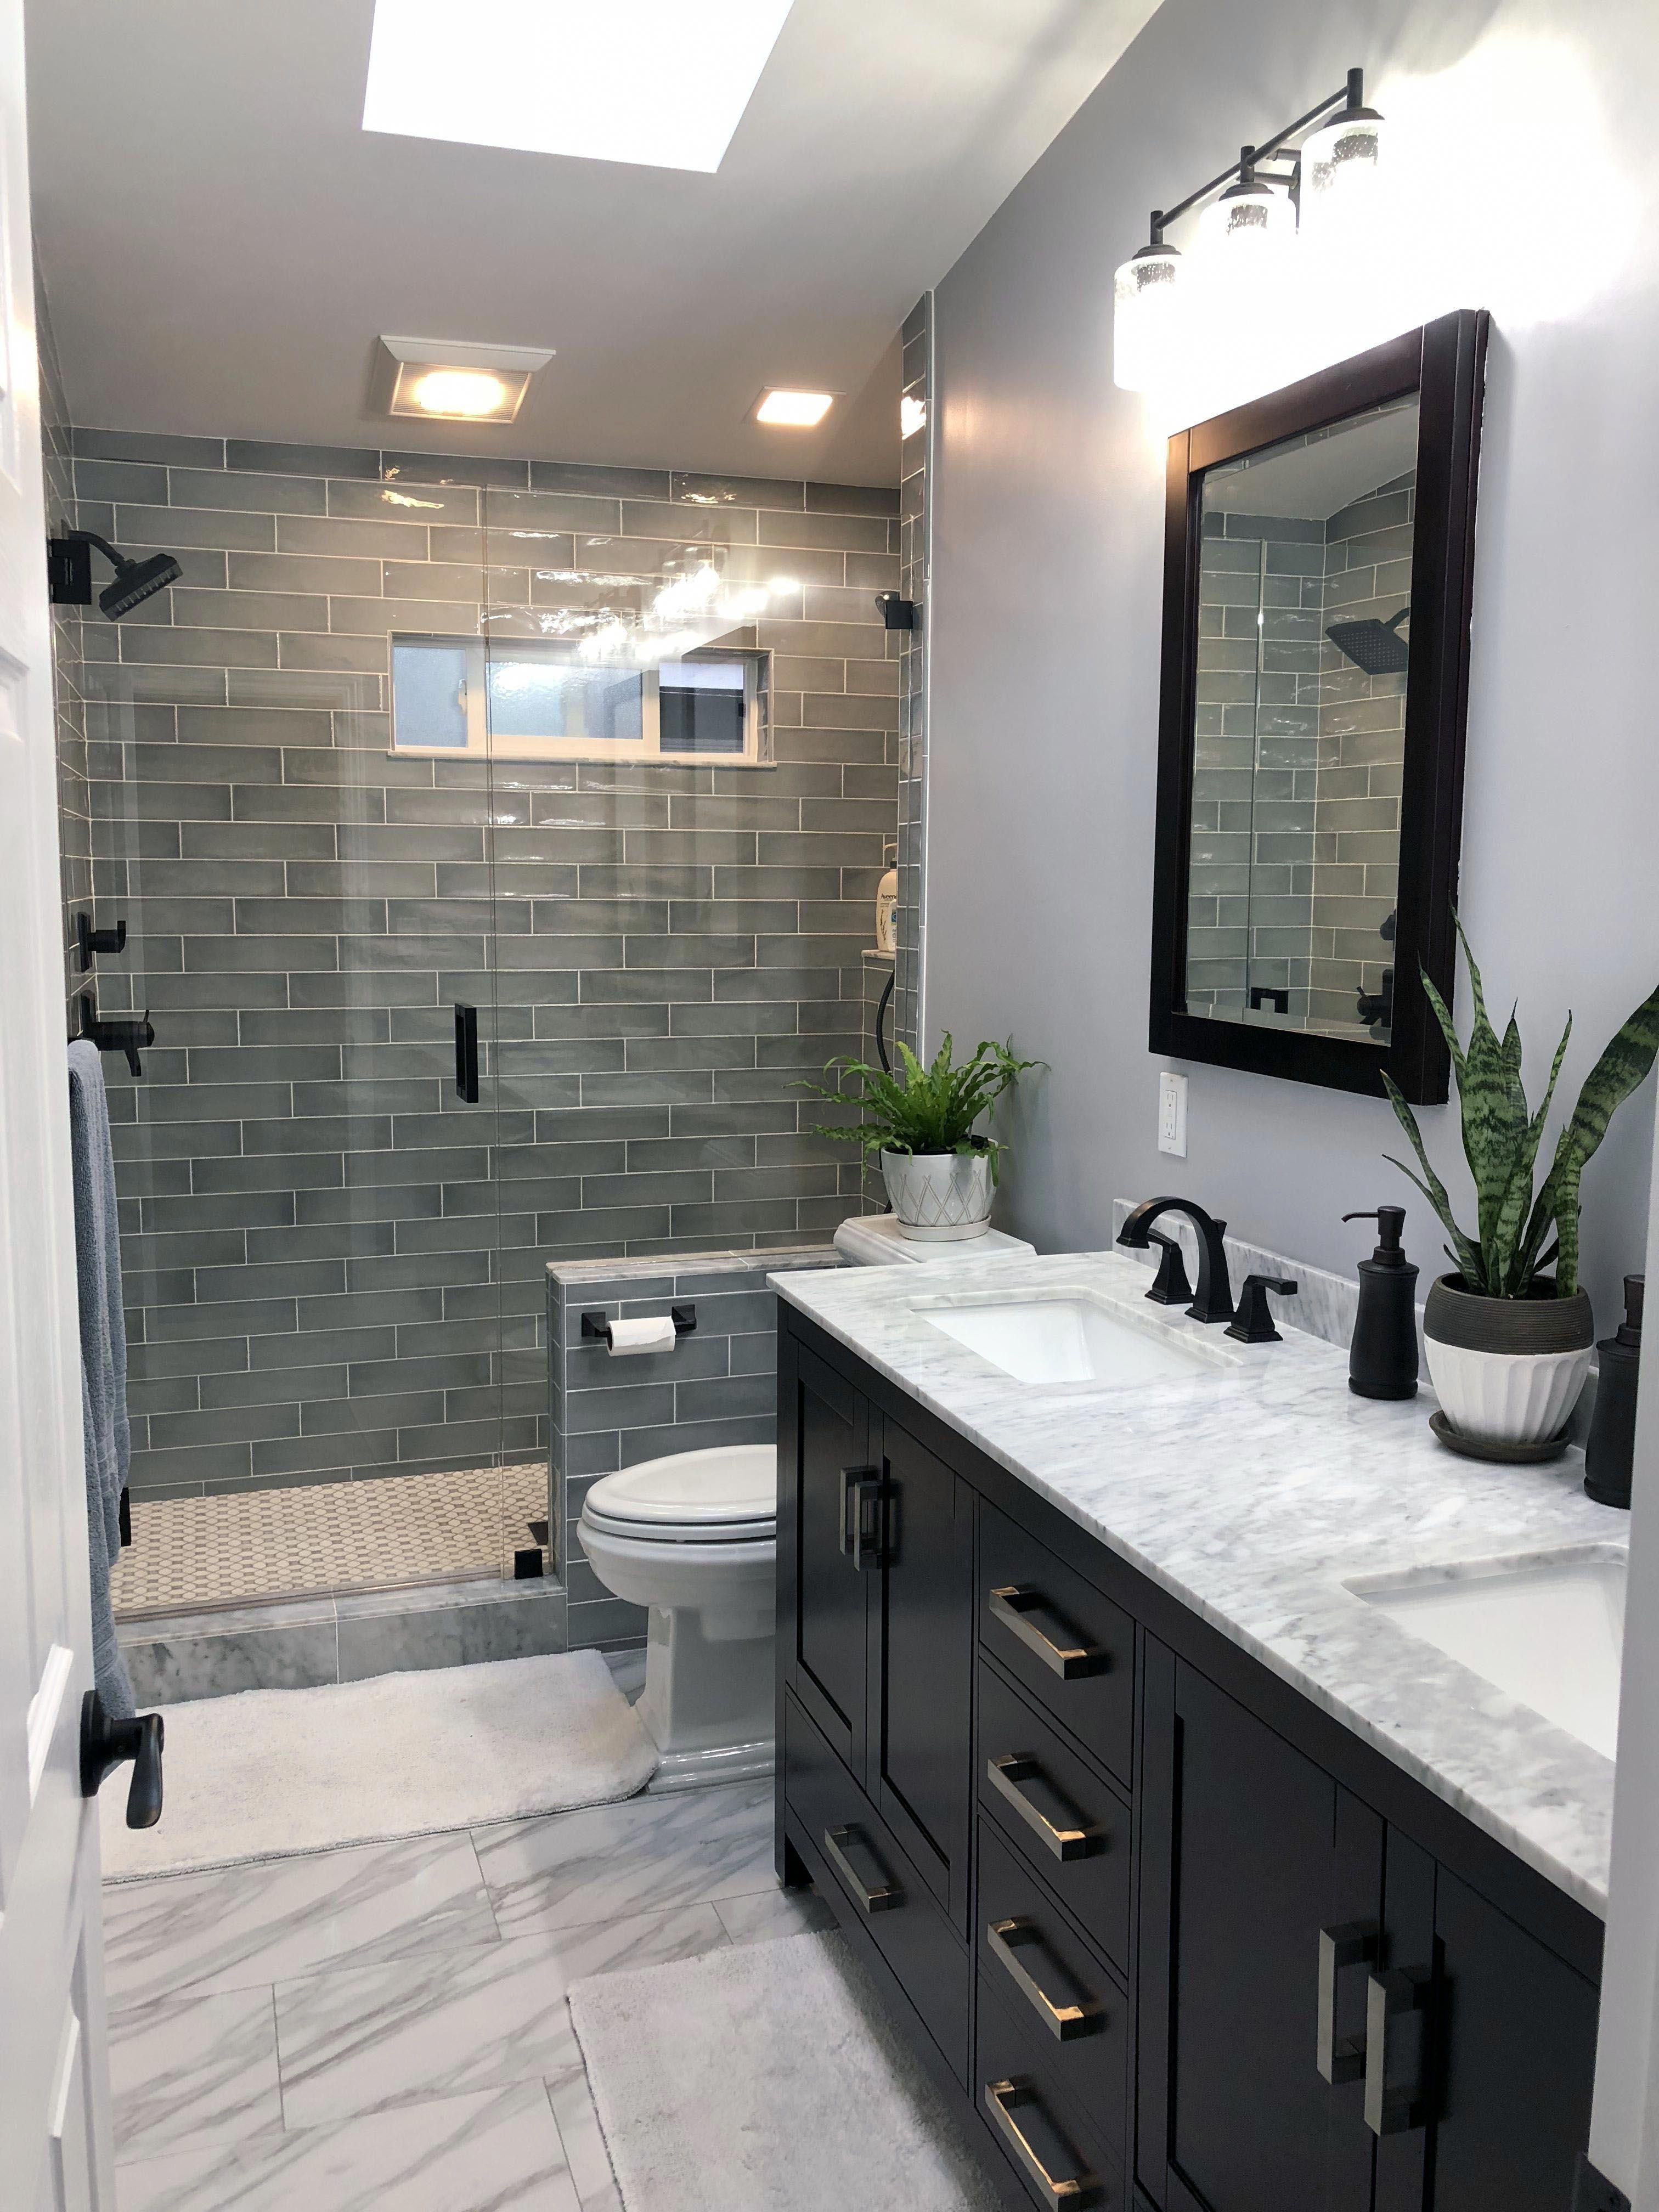 Best Small Bathroom Remodel Ideas With Corner Shower One And Only Homesaholic Com Bestsma Bathroom Tile Designs Bathroom Remodel Master Small Bathroom Remodel